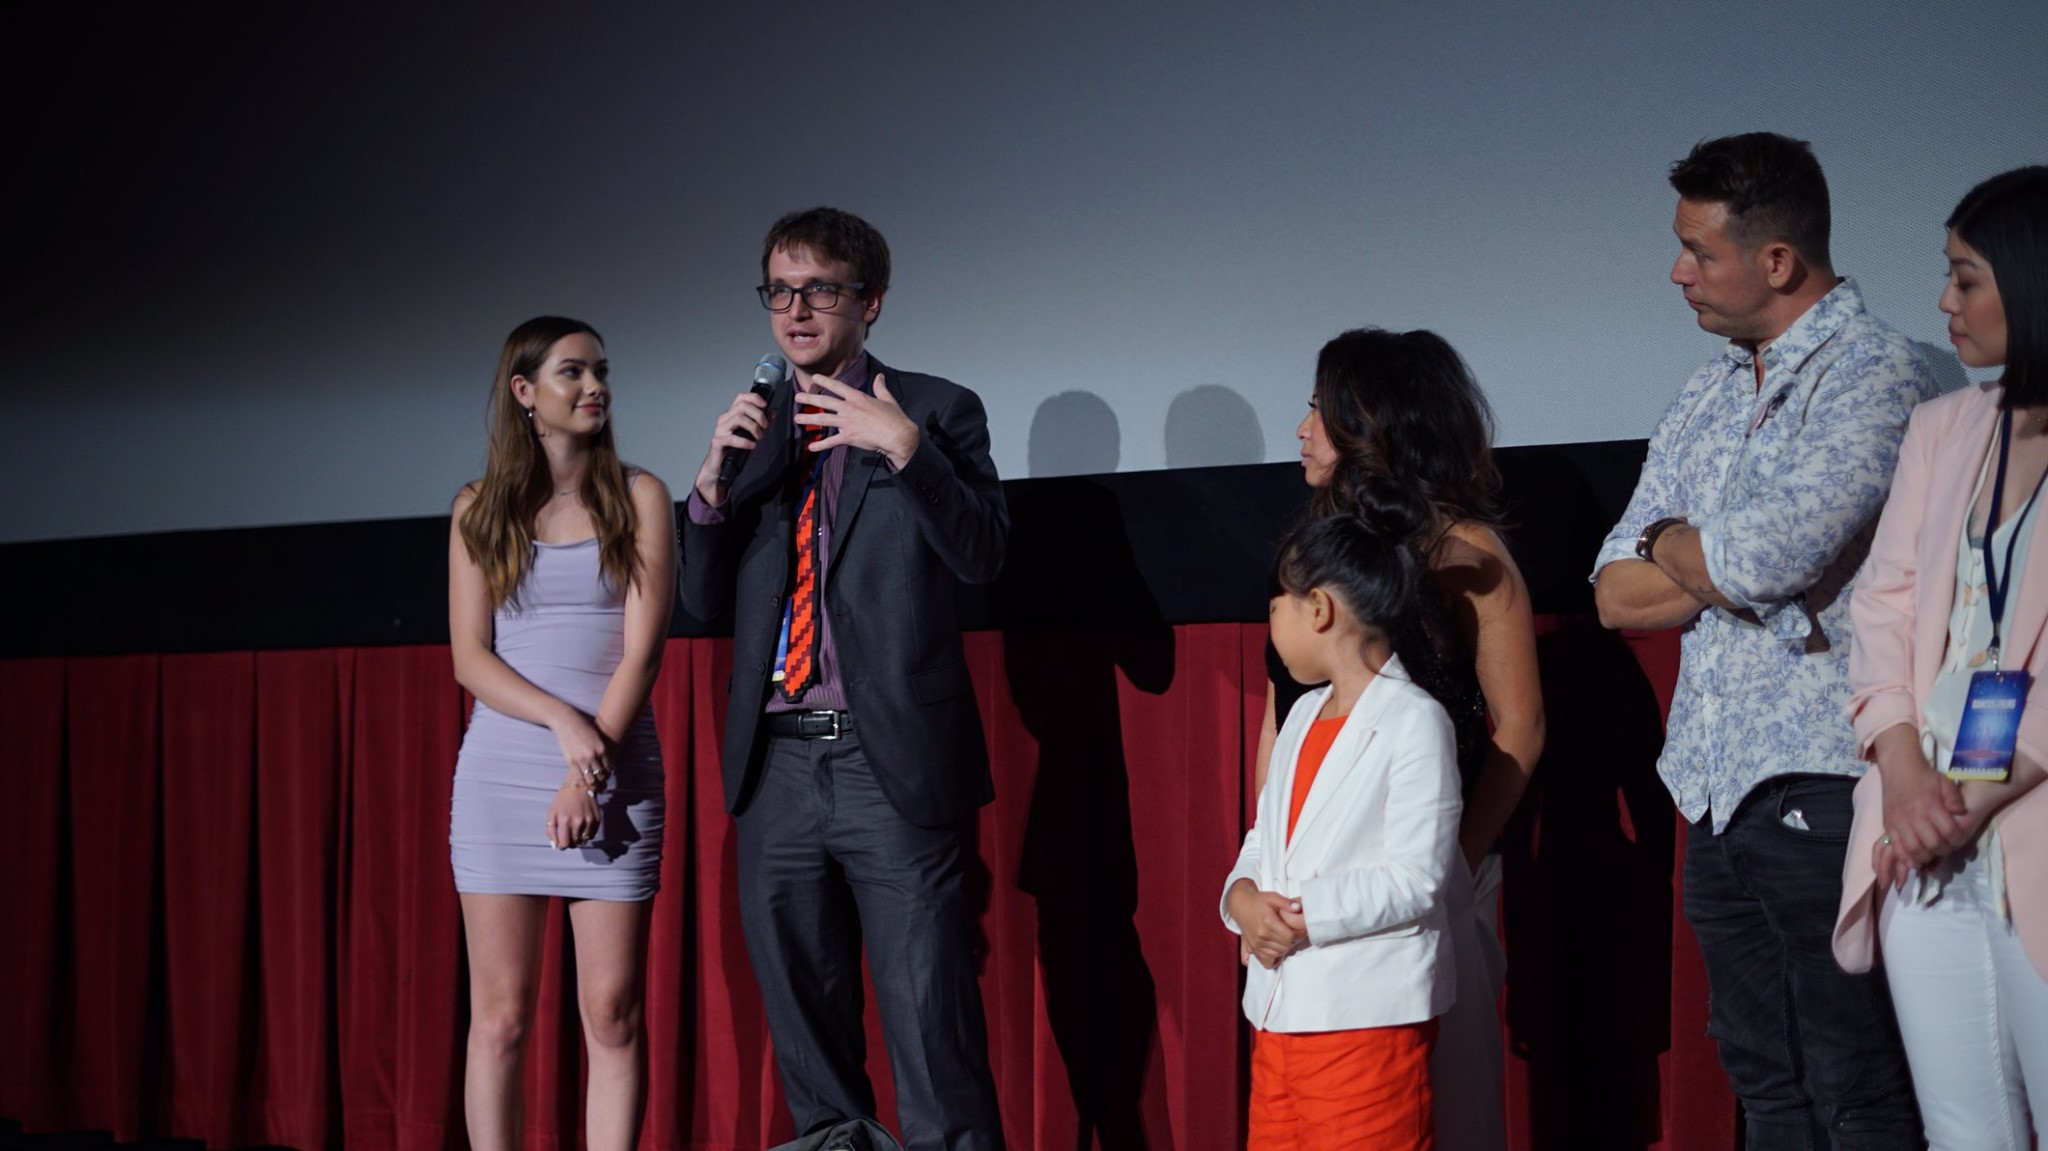 Lead Actress, Kate Buatti (left) and Writer/Director, Michael Felker (goofy person with mic) at the Q&A for the short films block.